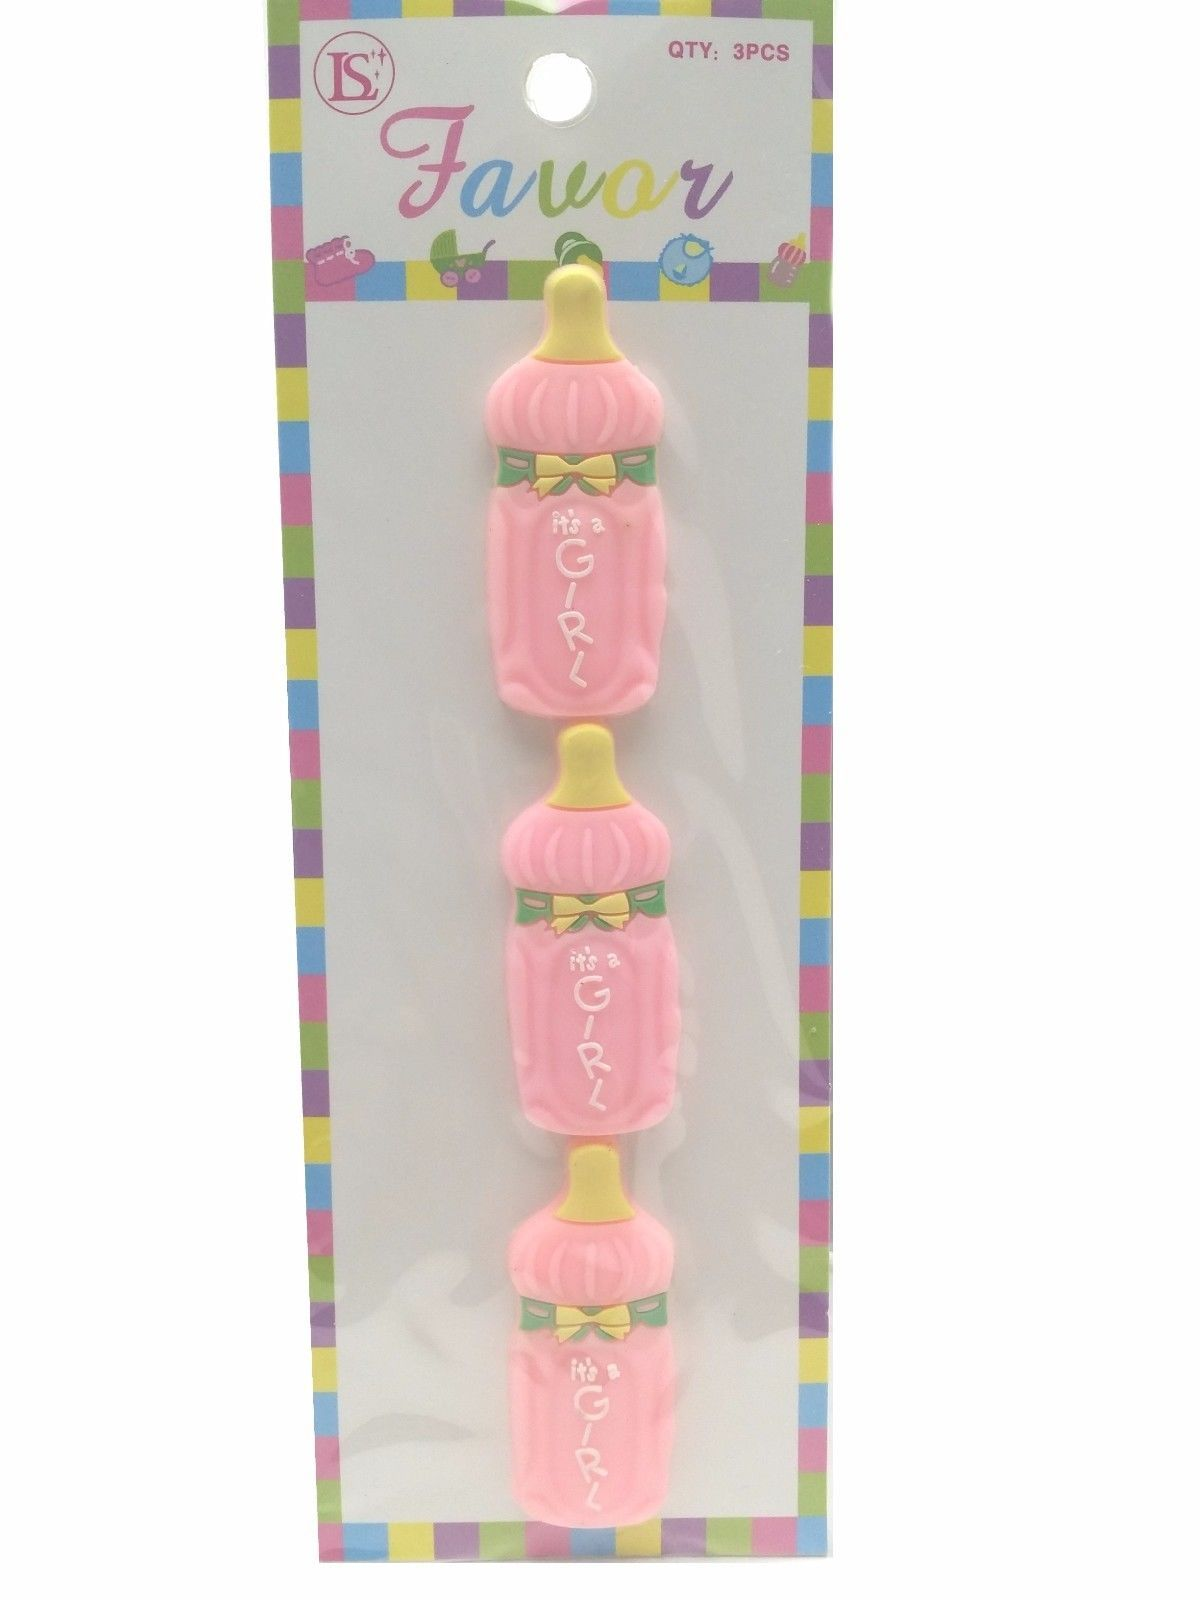 12 Flexible Pink Baby Bottle baby shower favors appliques - 4 pk of 3 image 2